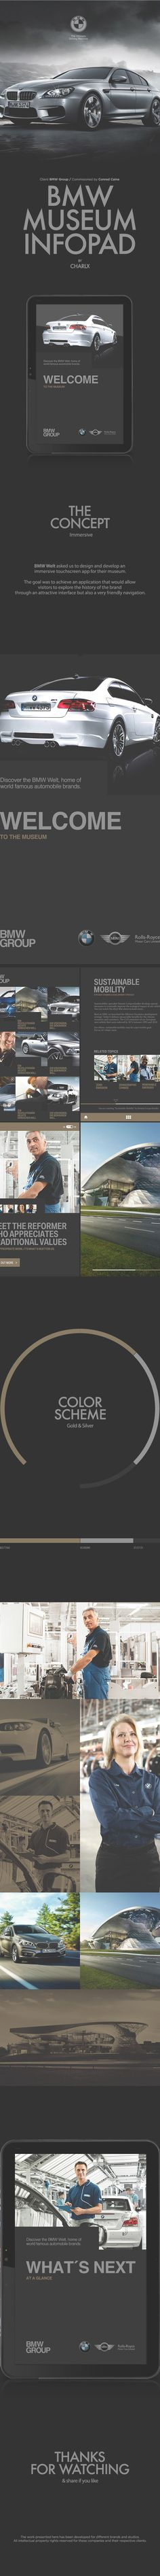 BMW MUSEUM INFOPAD on Behance